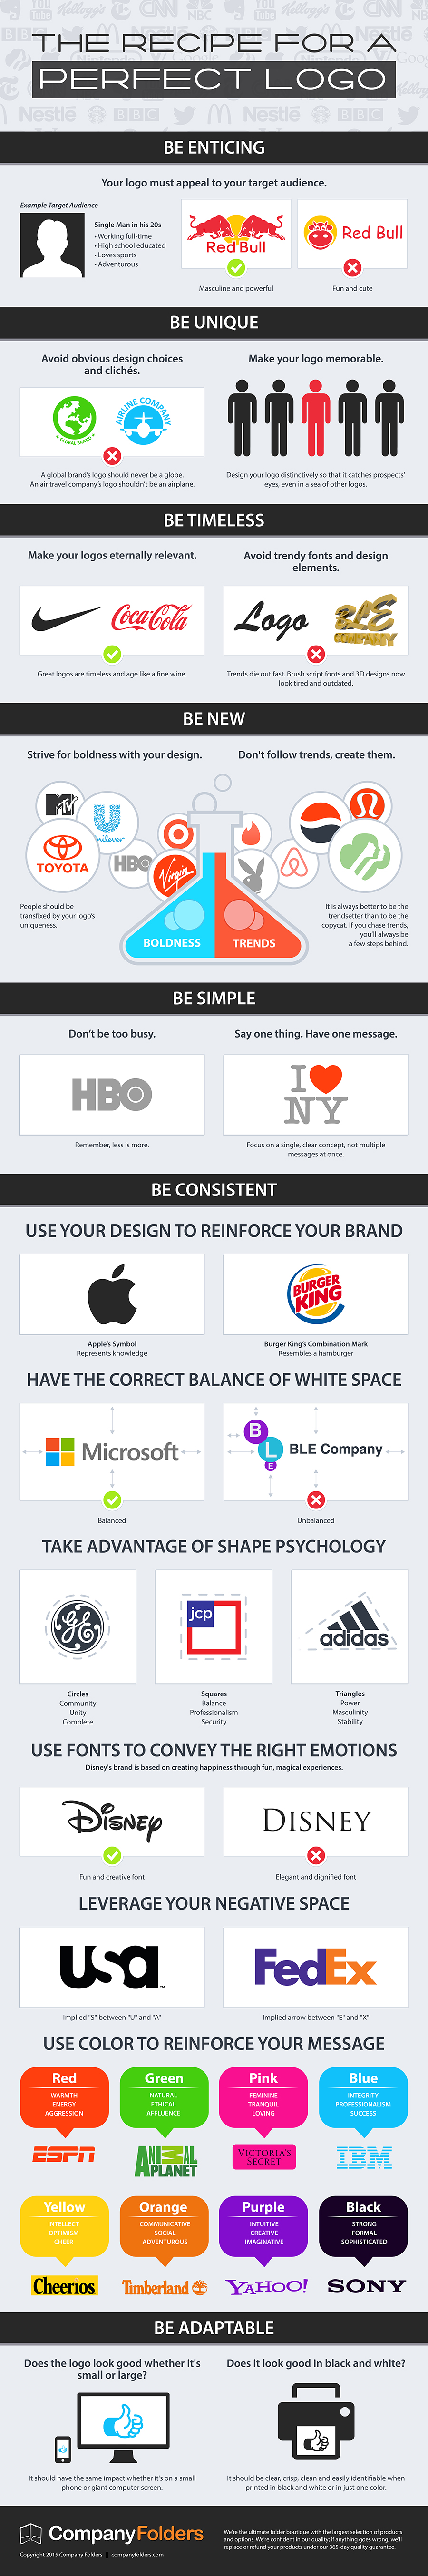 How to Design a Business Logo